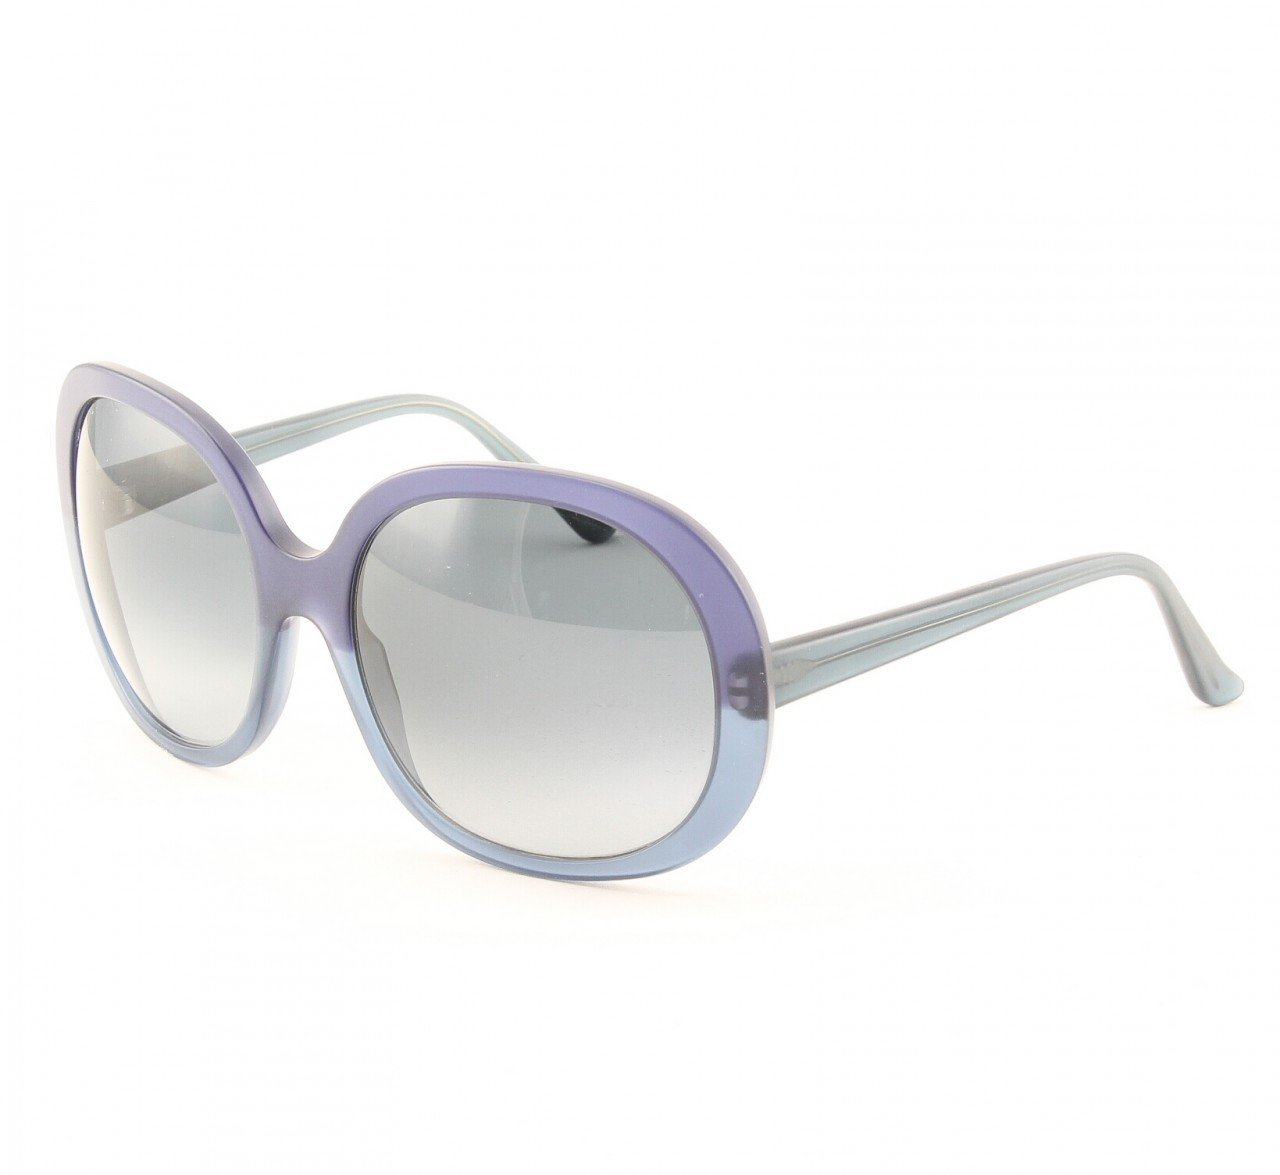 Marni MA221 Sunglasses Col. 01 Opaque Navy Blue with Gradient Gray Lenses